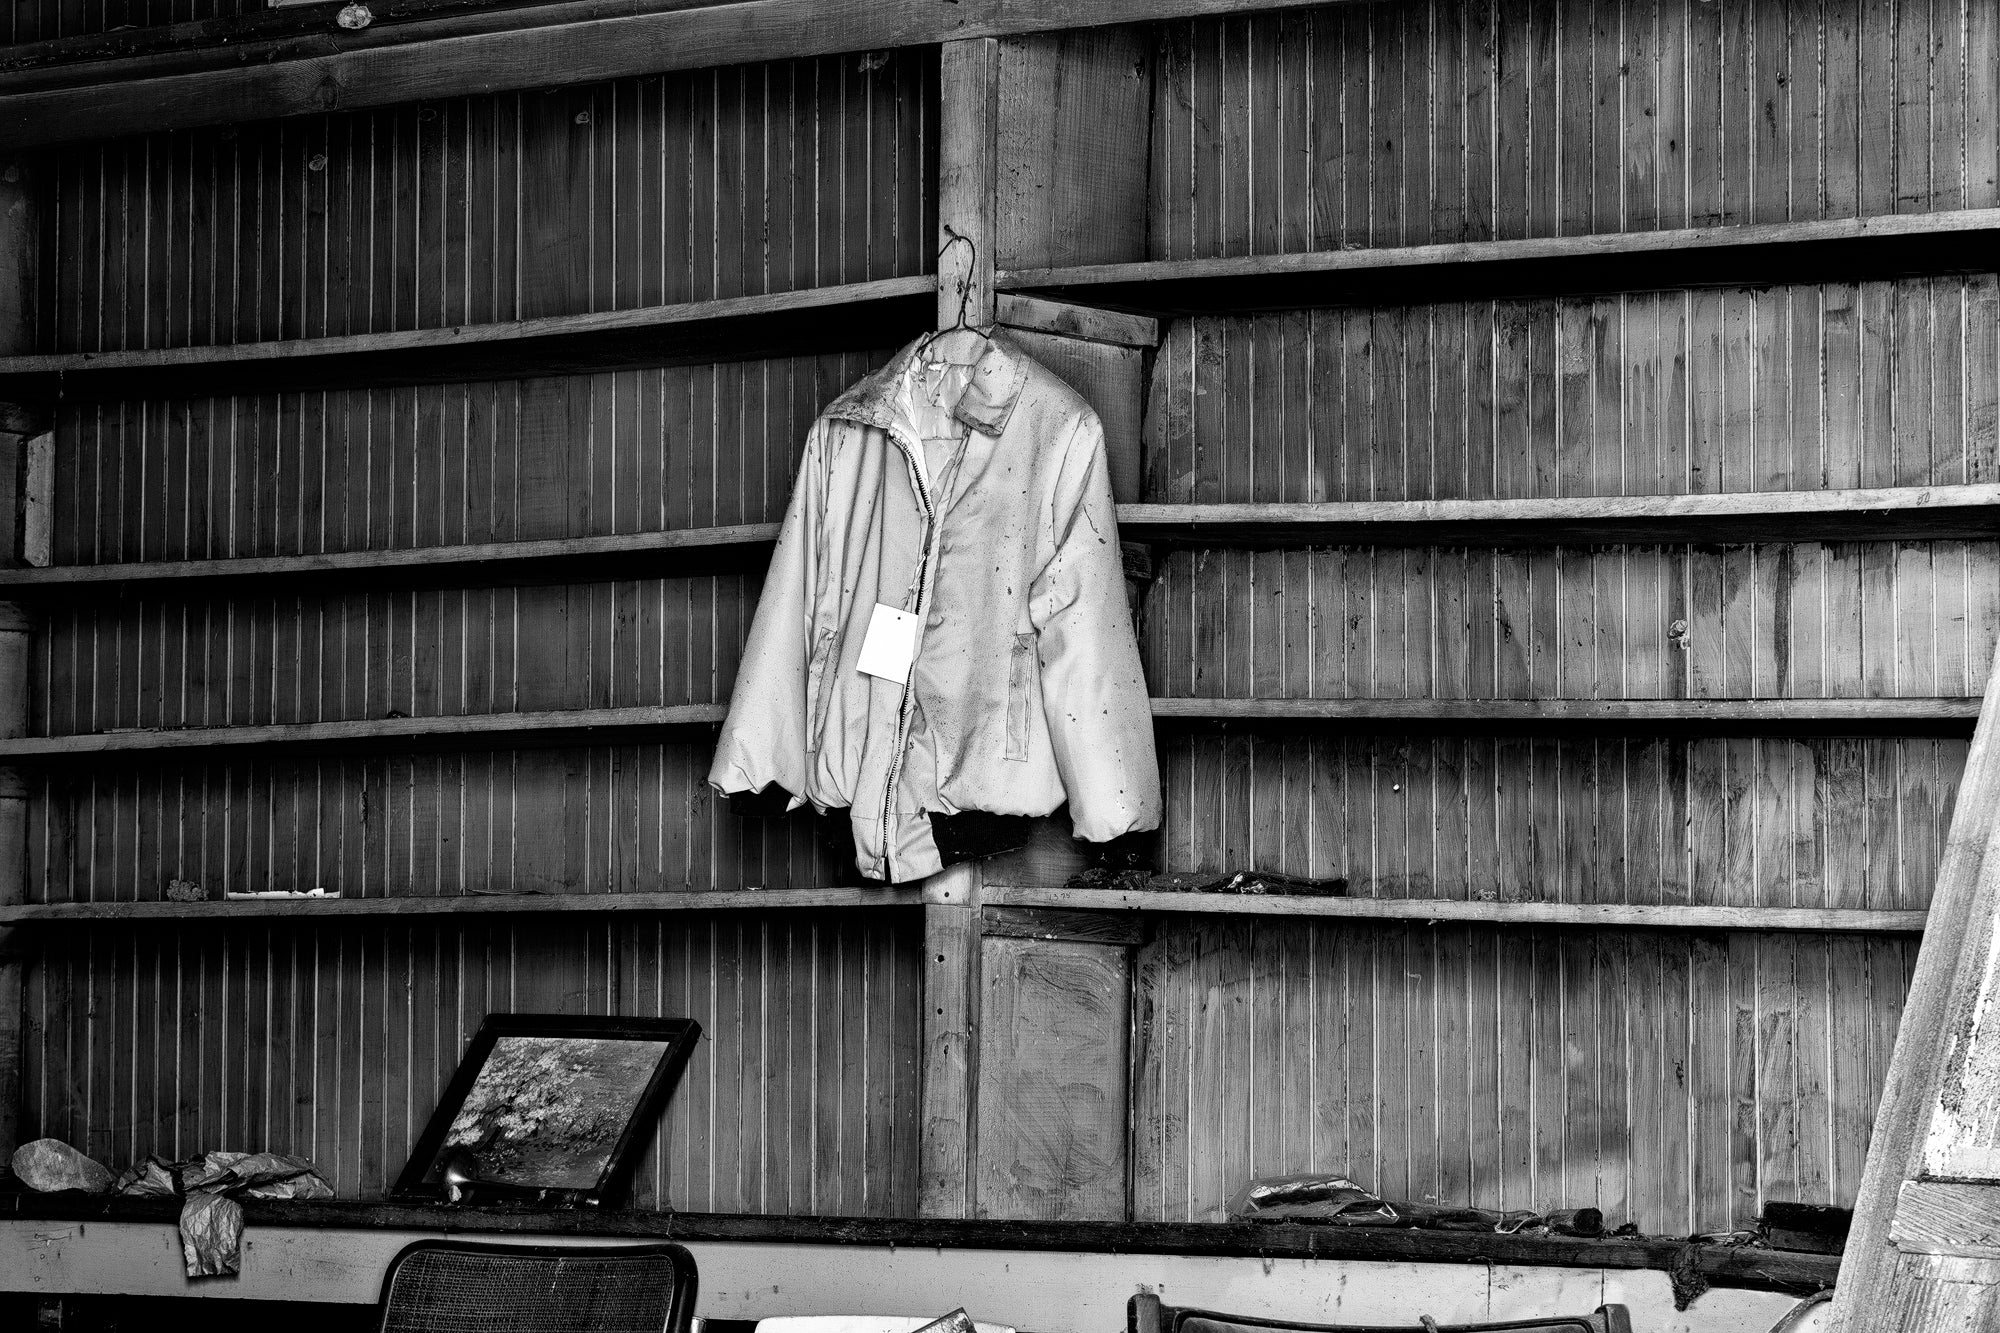 Blue Jacket with Sale Tag Hanging in an Abandoned Old Country Store. Black and White Photograph by Keith Dotson. Click to buy a fine art print.